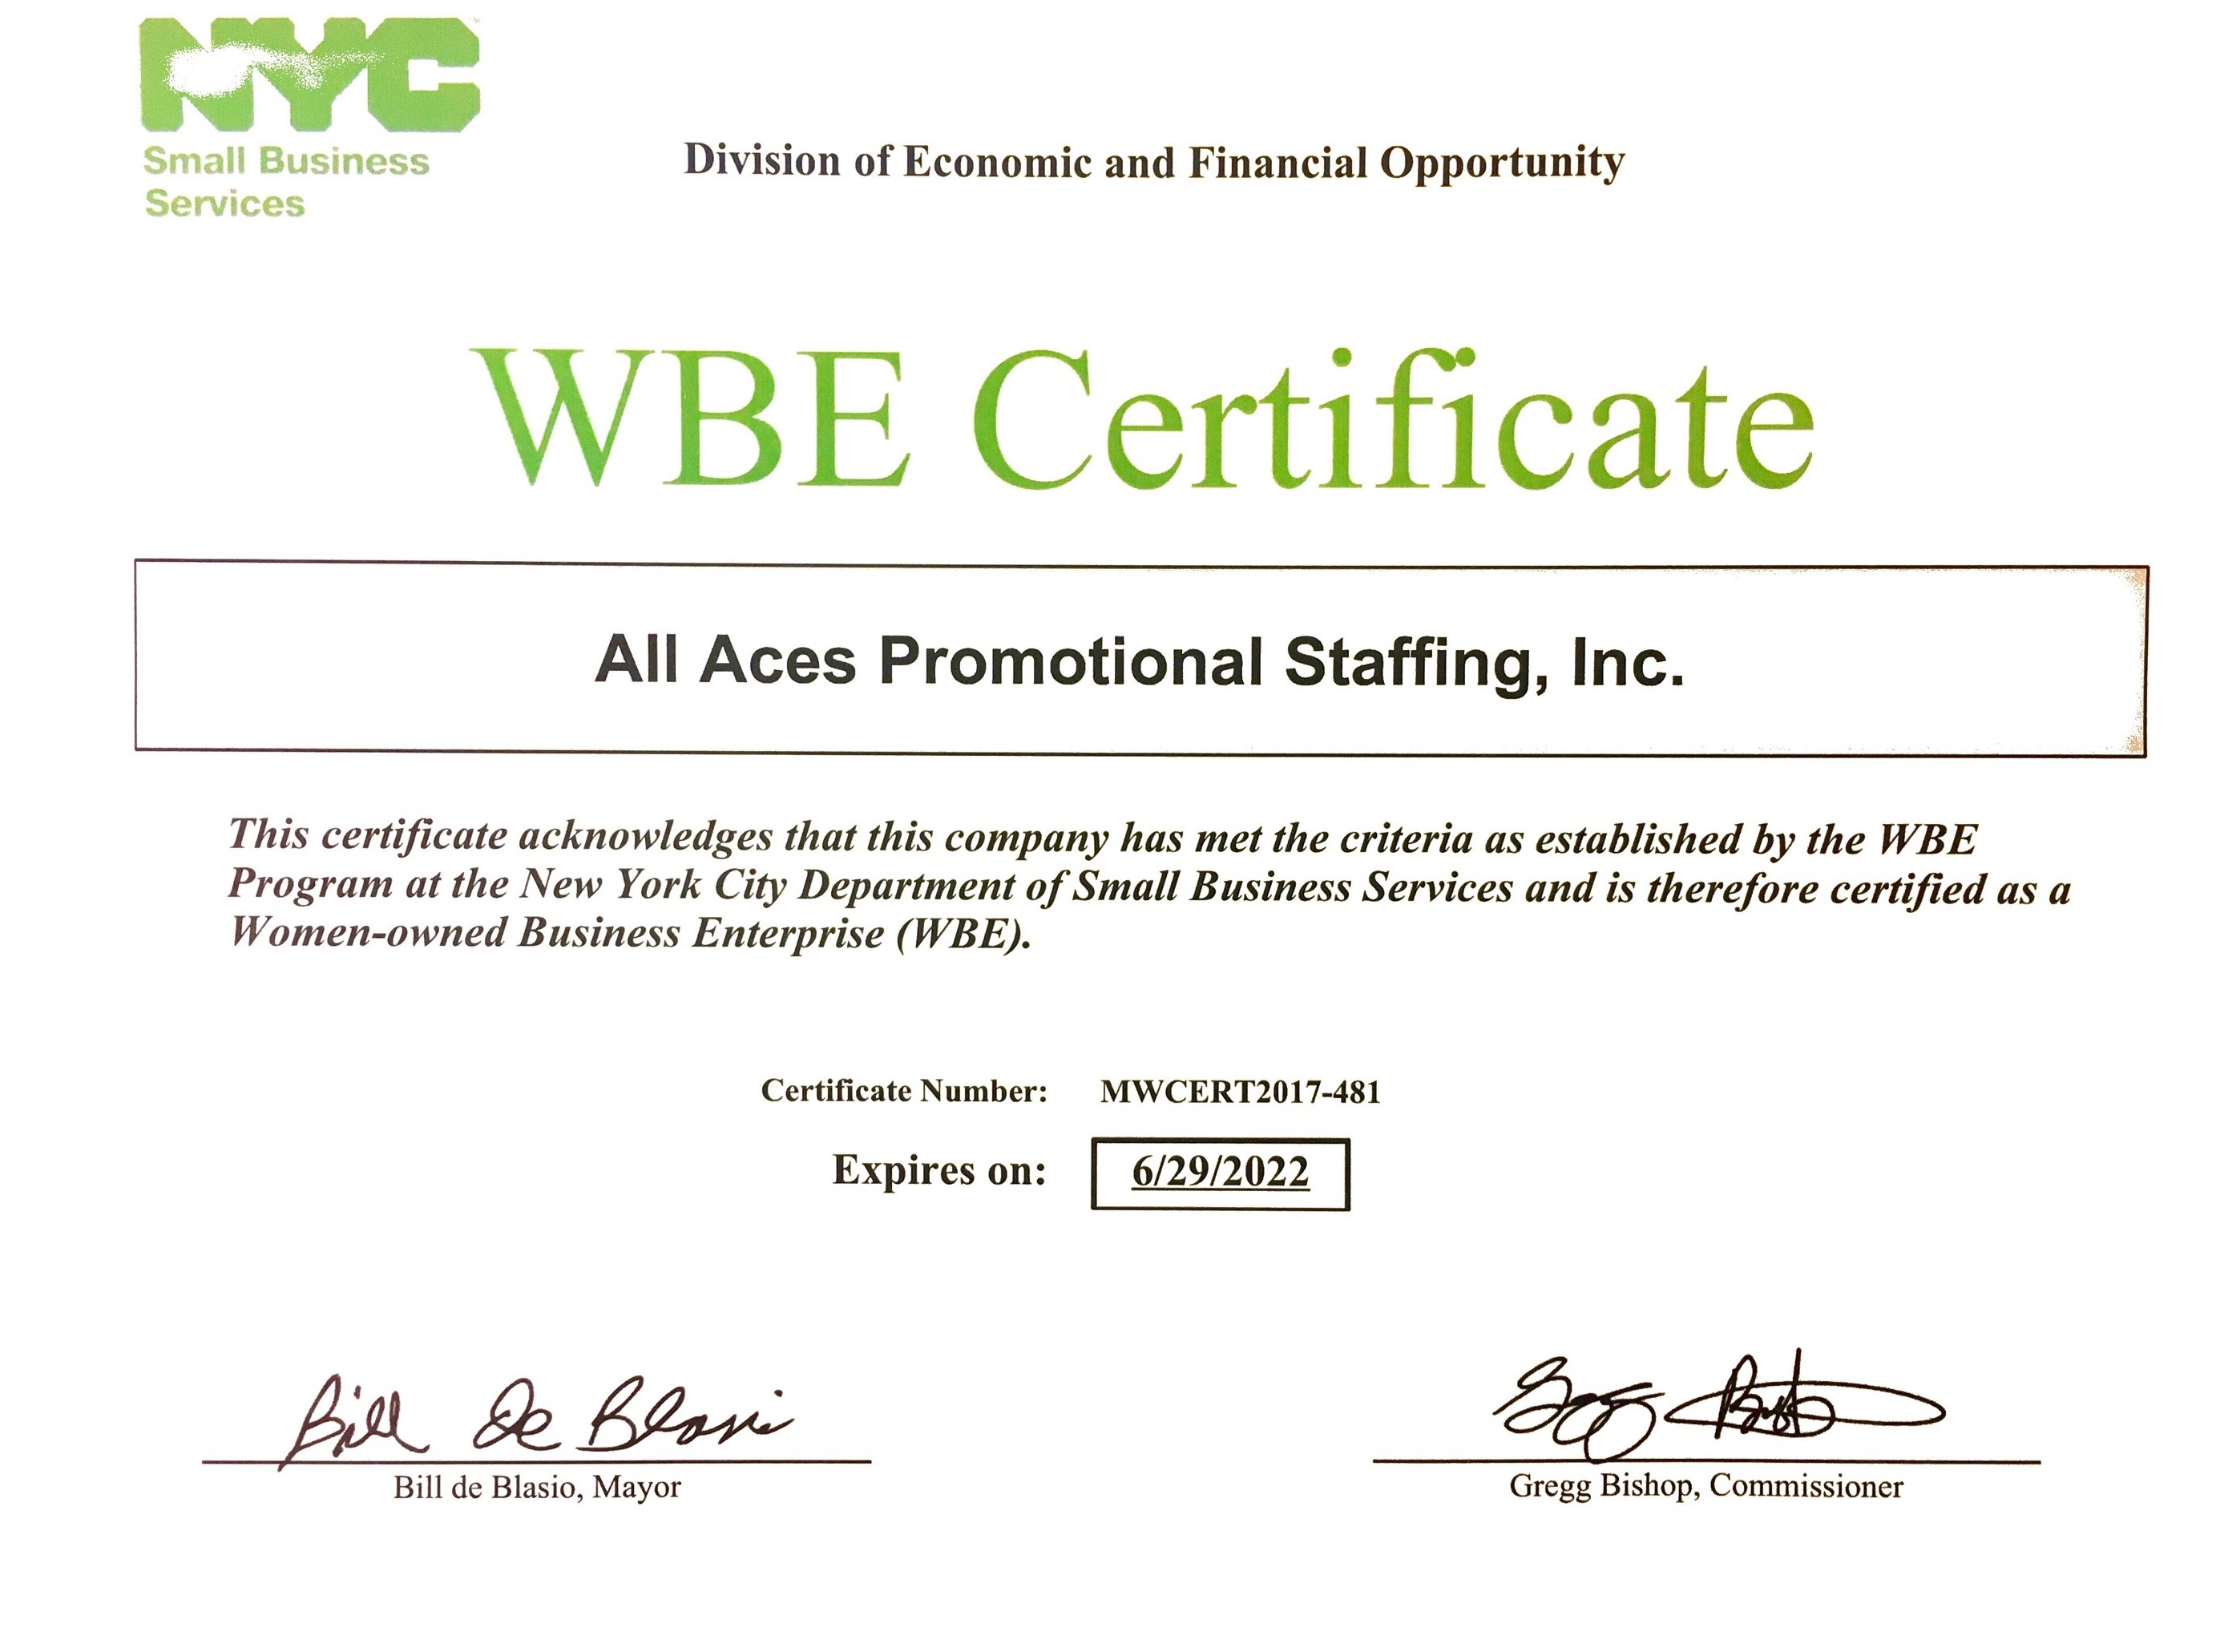 All Aces Promotional Staffing Is Now A Certified Wbe All Aces